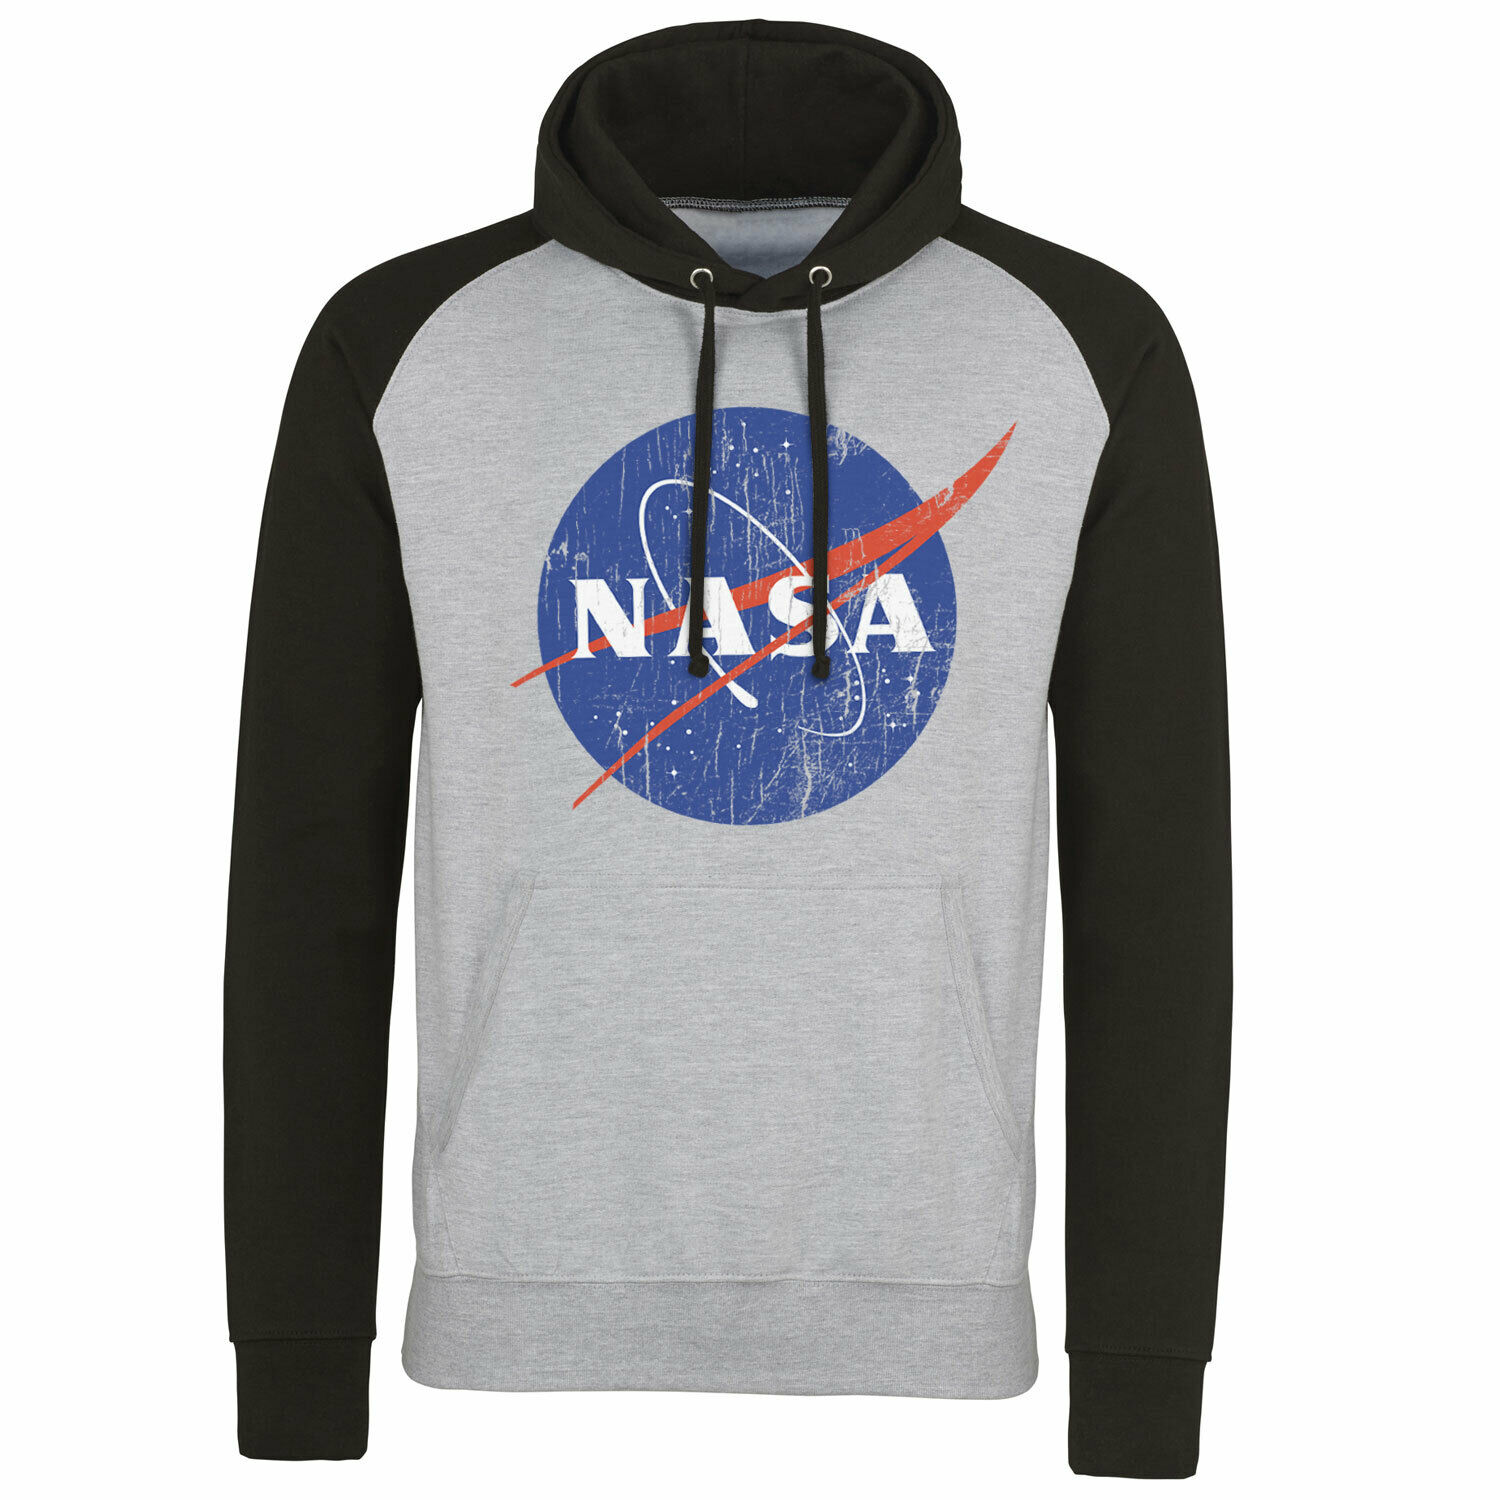 Officially Licensed NASA Washed Insignia Baseball Hoodie S-XXL Size